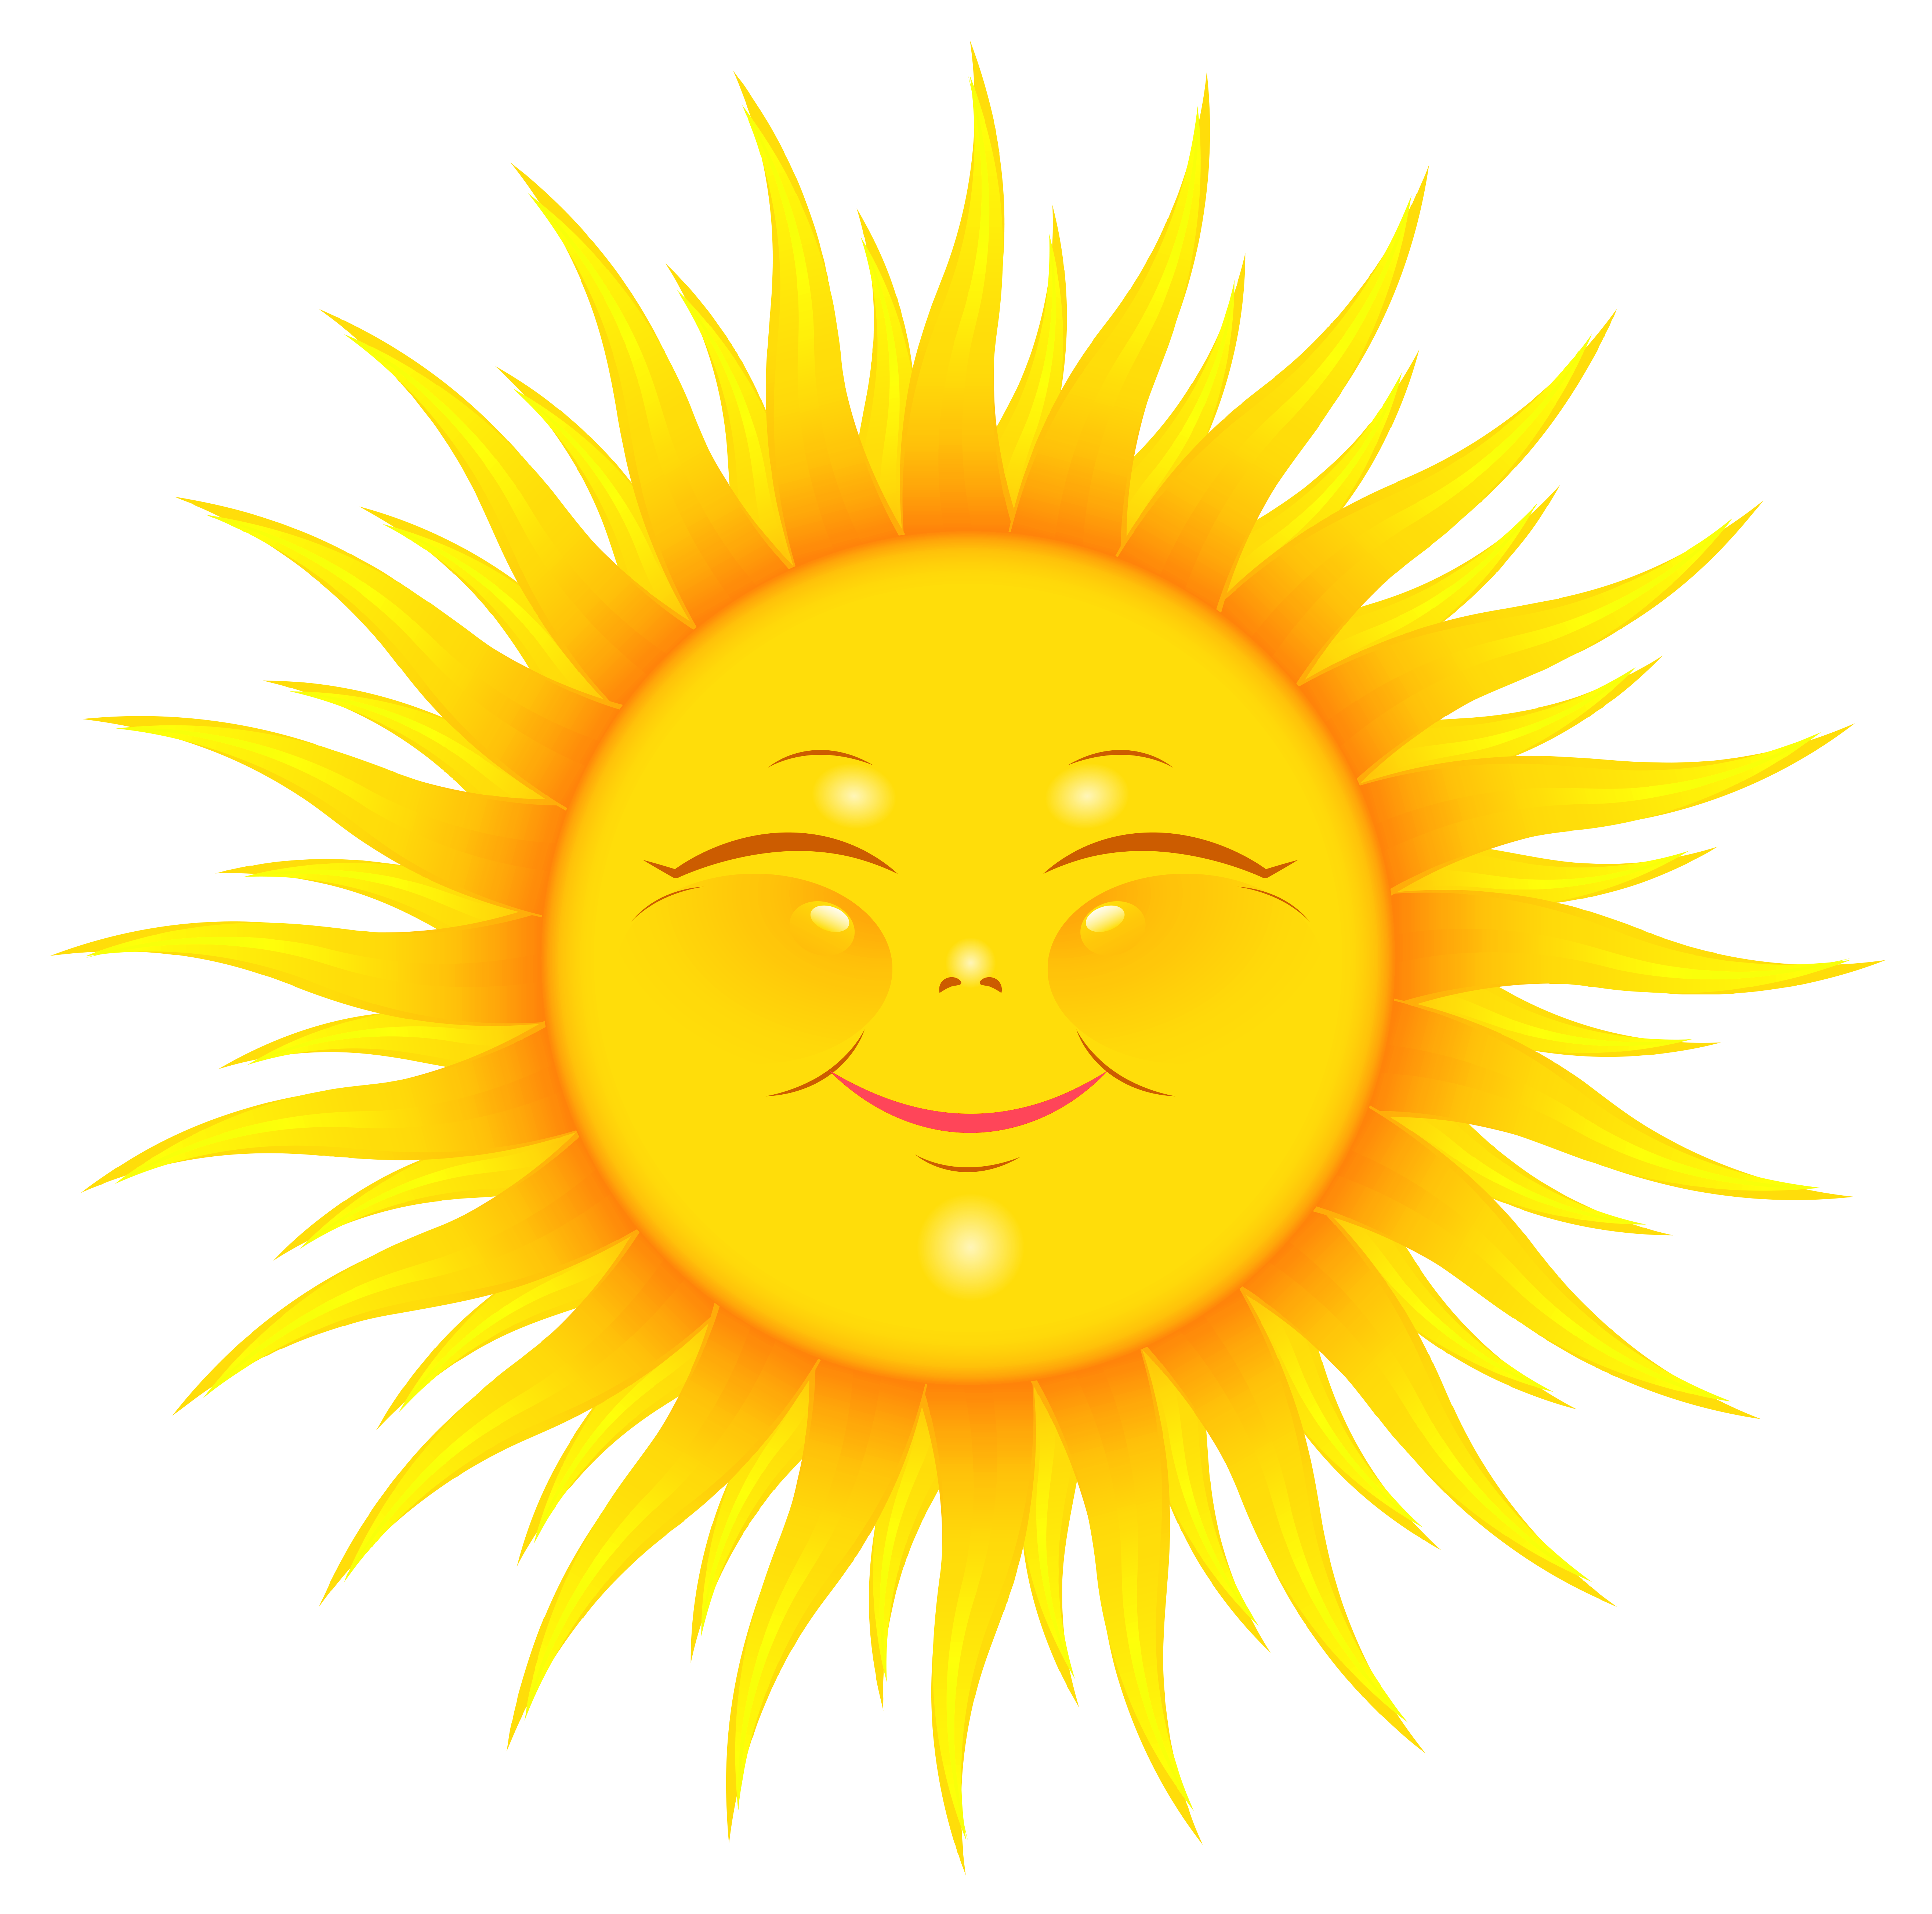 Cute sun smiling clipart picture royalty free Transparent Cute Sun Picture | Gallery Yopriceville - High-Quality ... picture royalty free